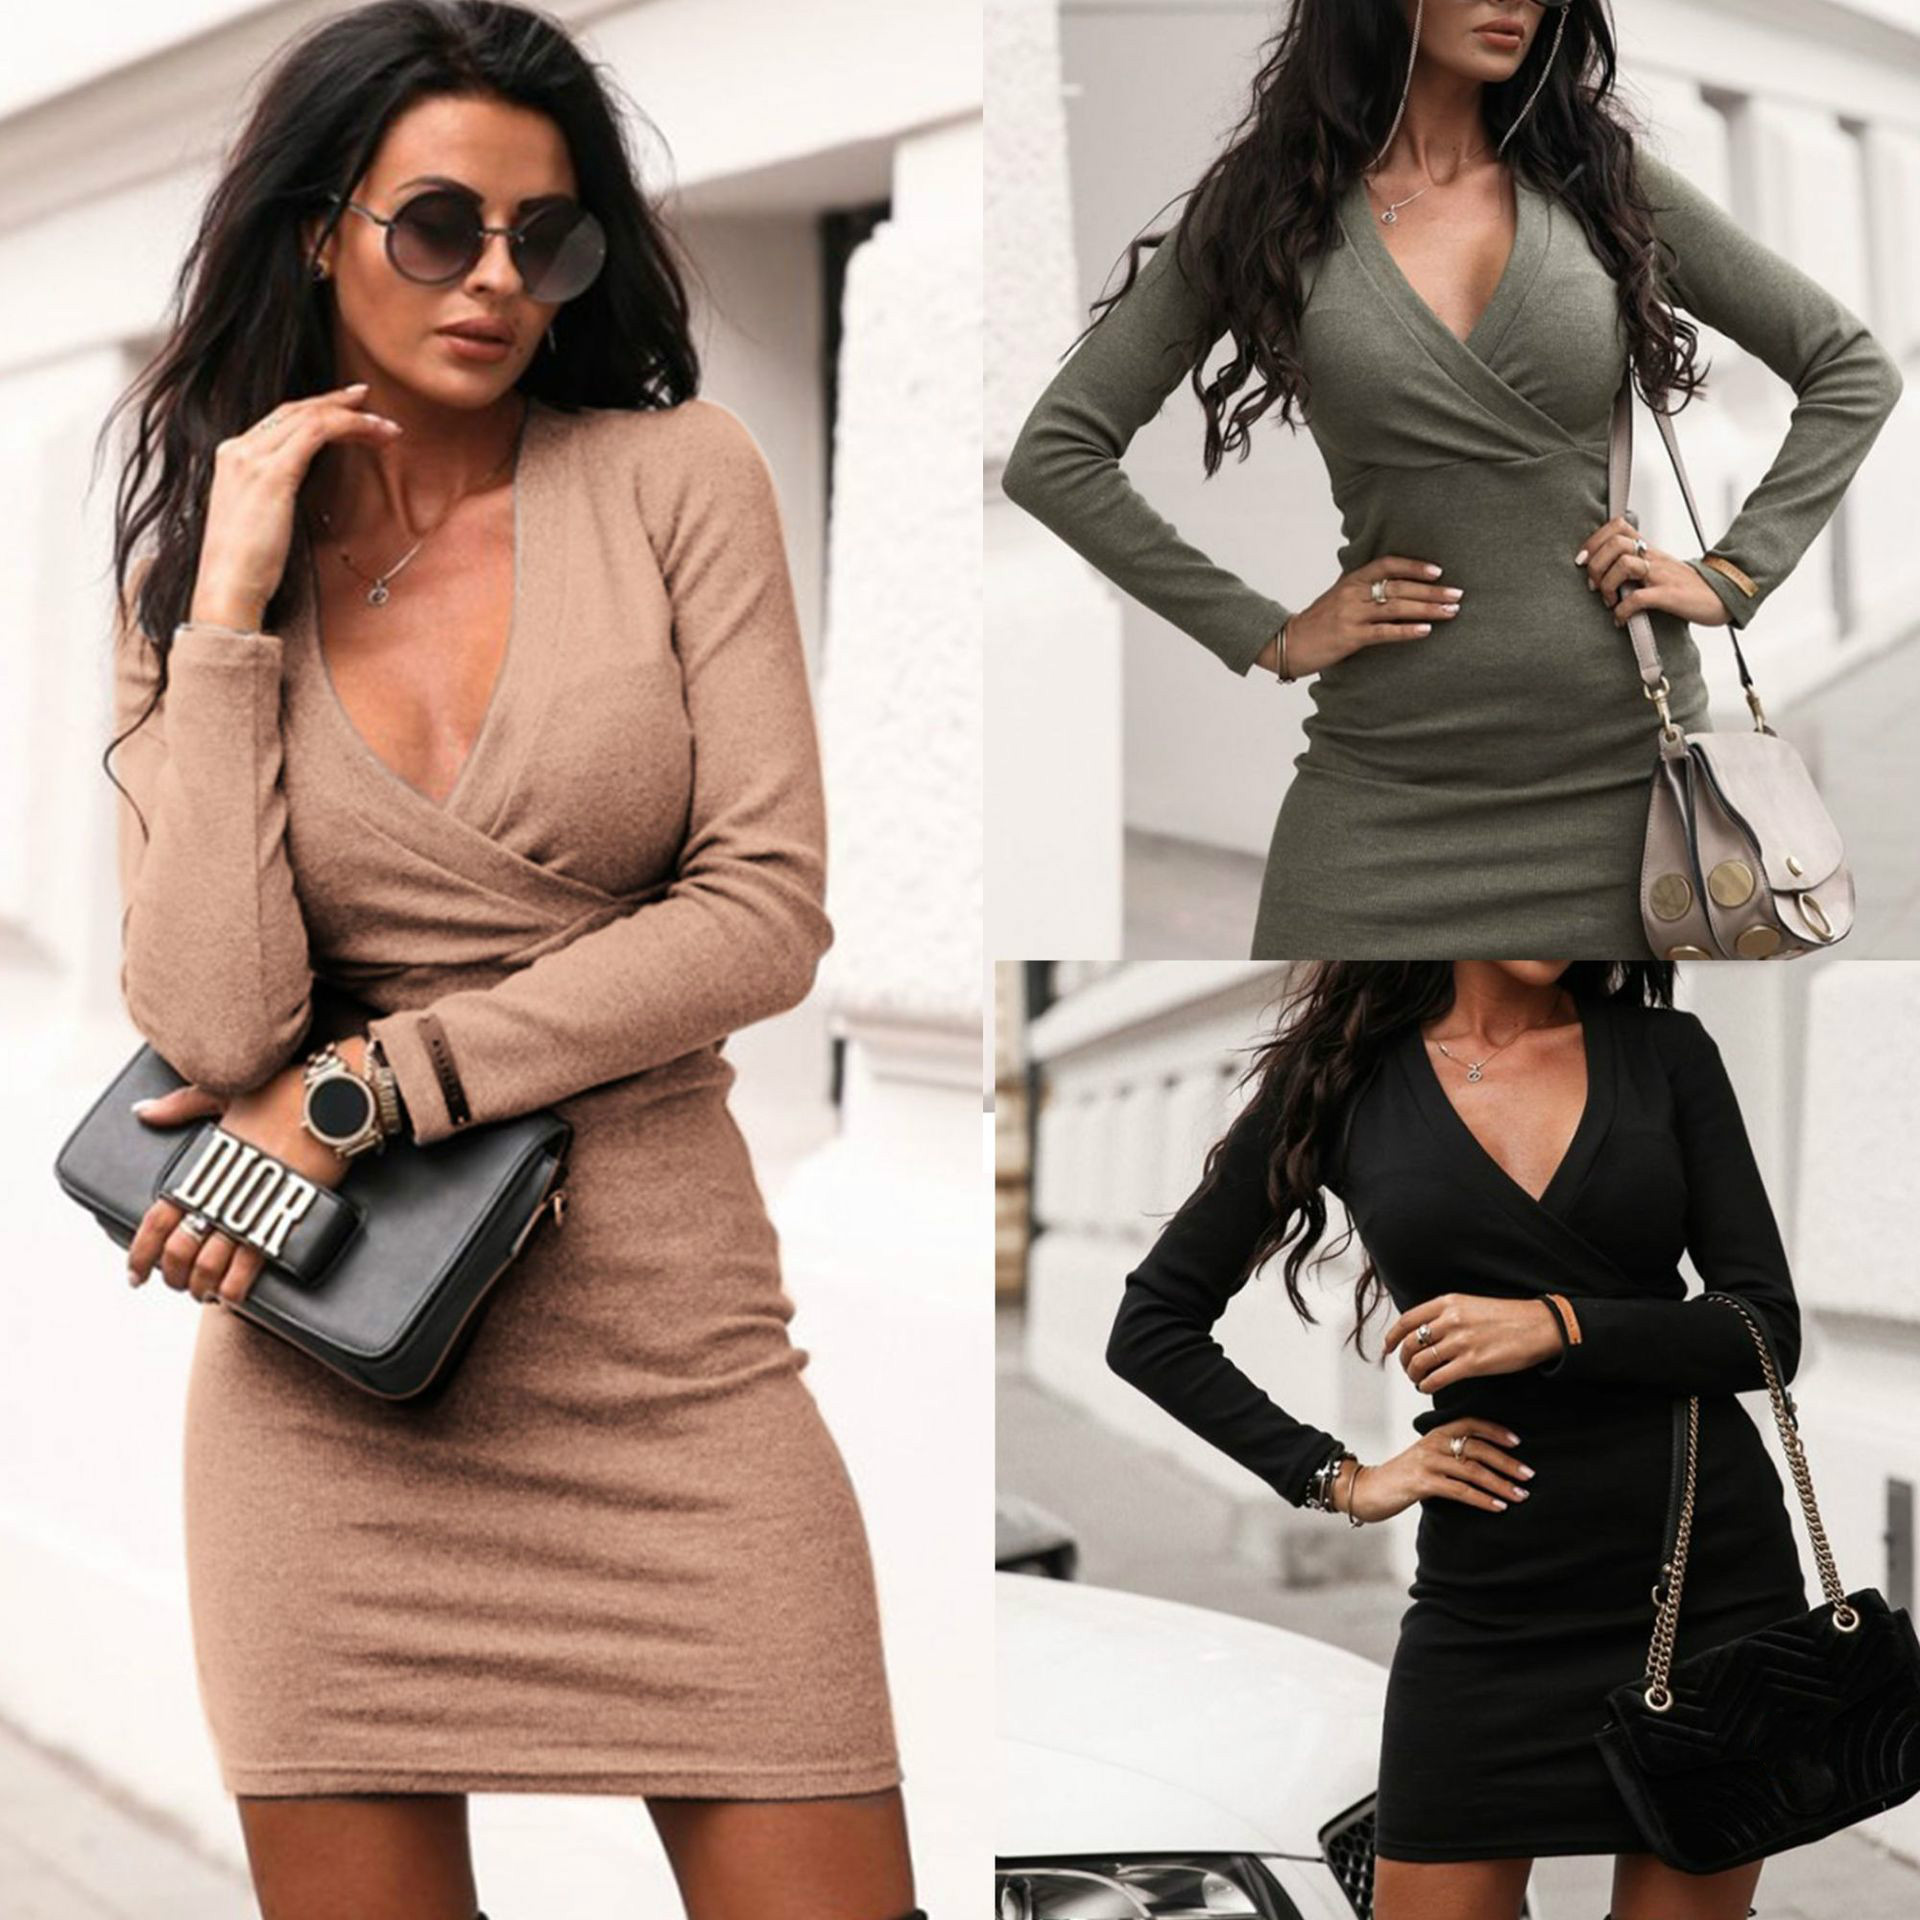 2019 Sexy Low Cut Solid Color Long Sleeve Women Bodycon Dress Sexy Dress Women Party Night Club Wear Long Sleeve Dress Dresses  - AliExpress